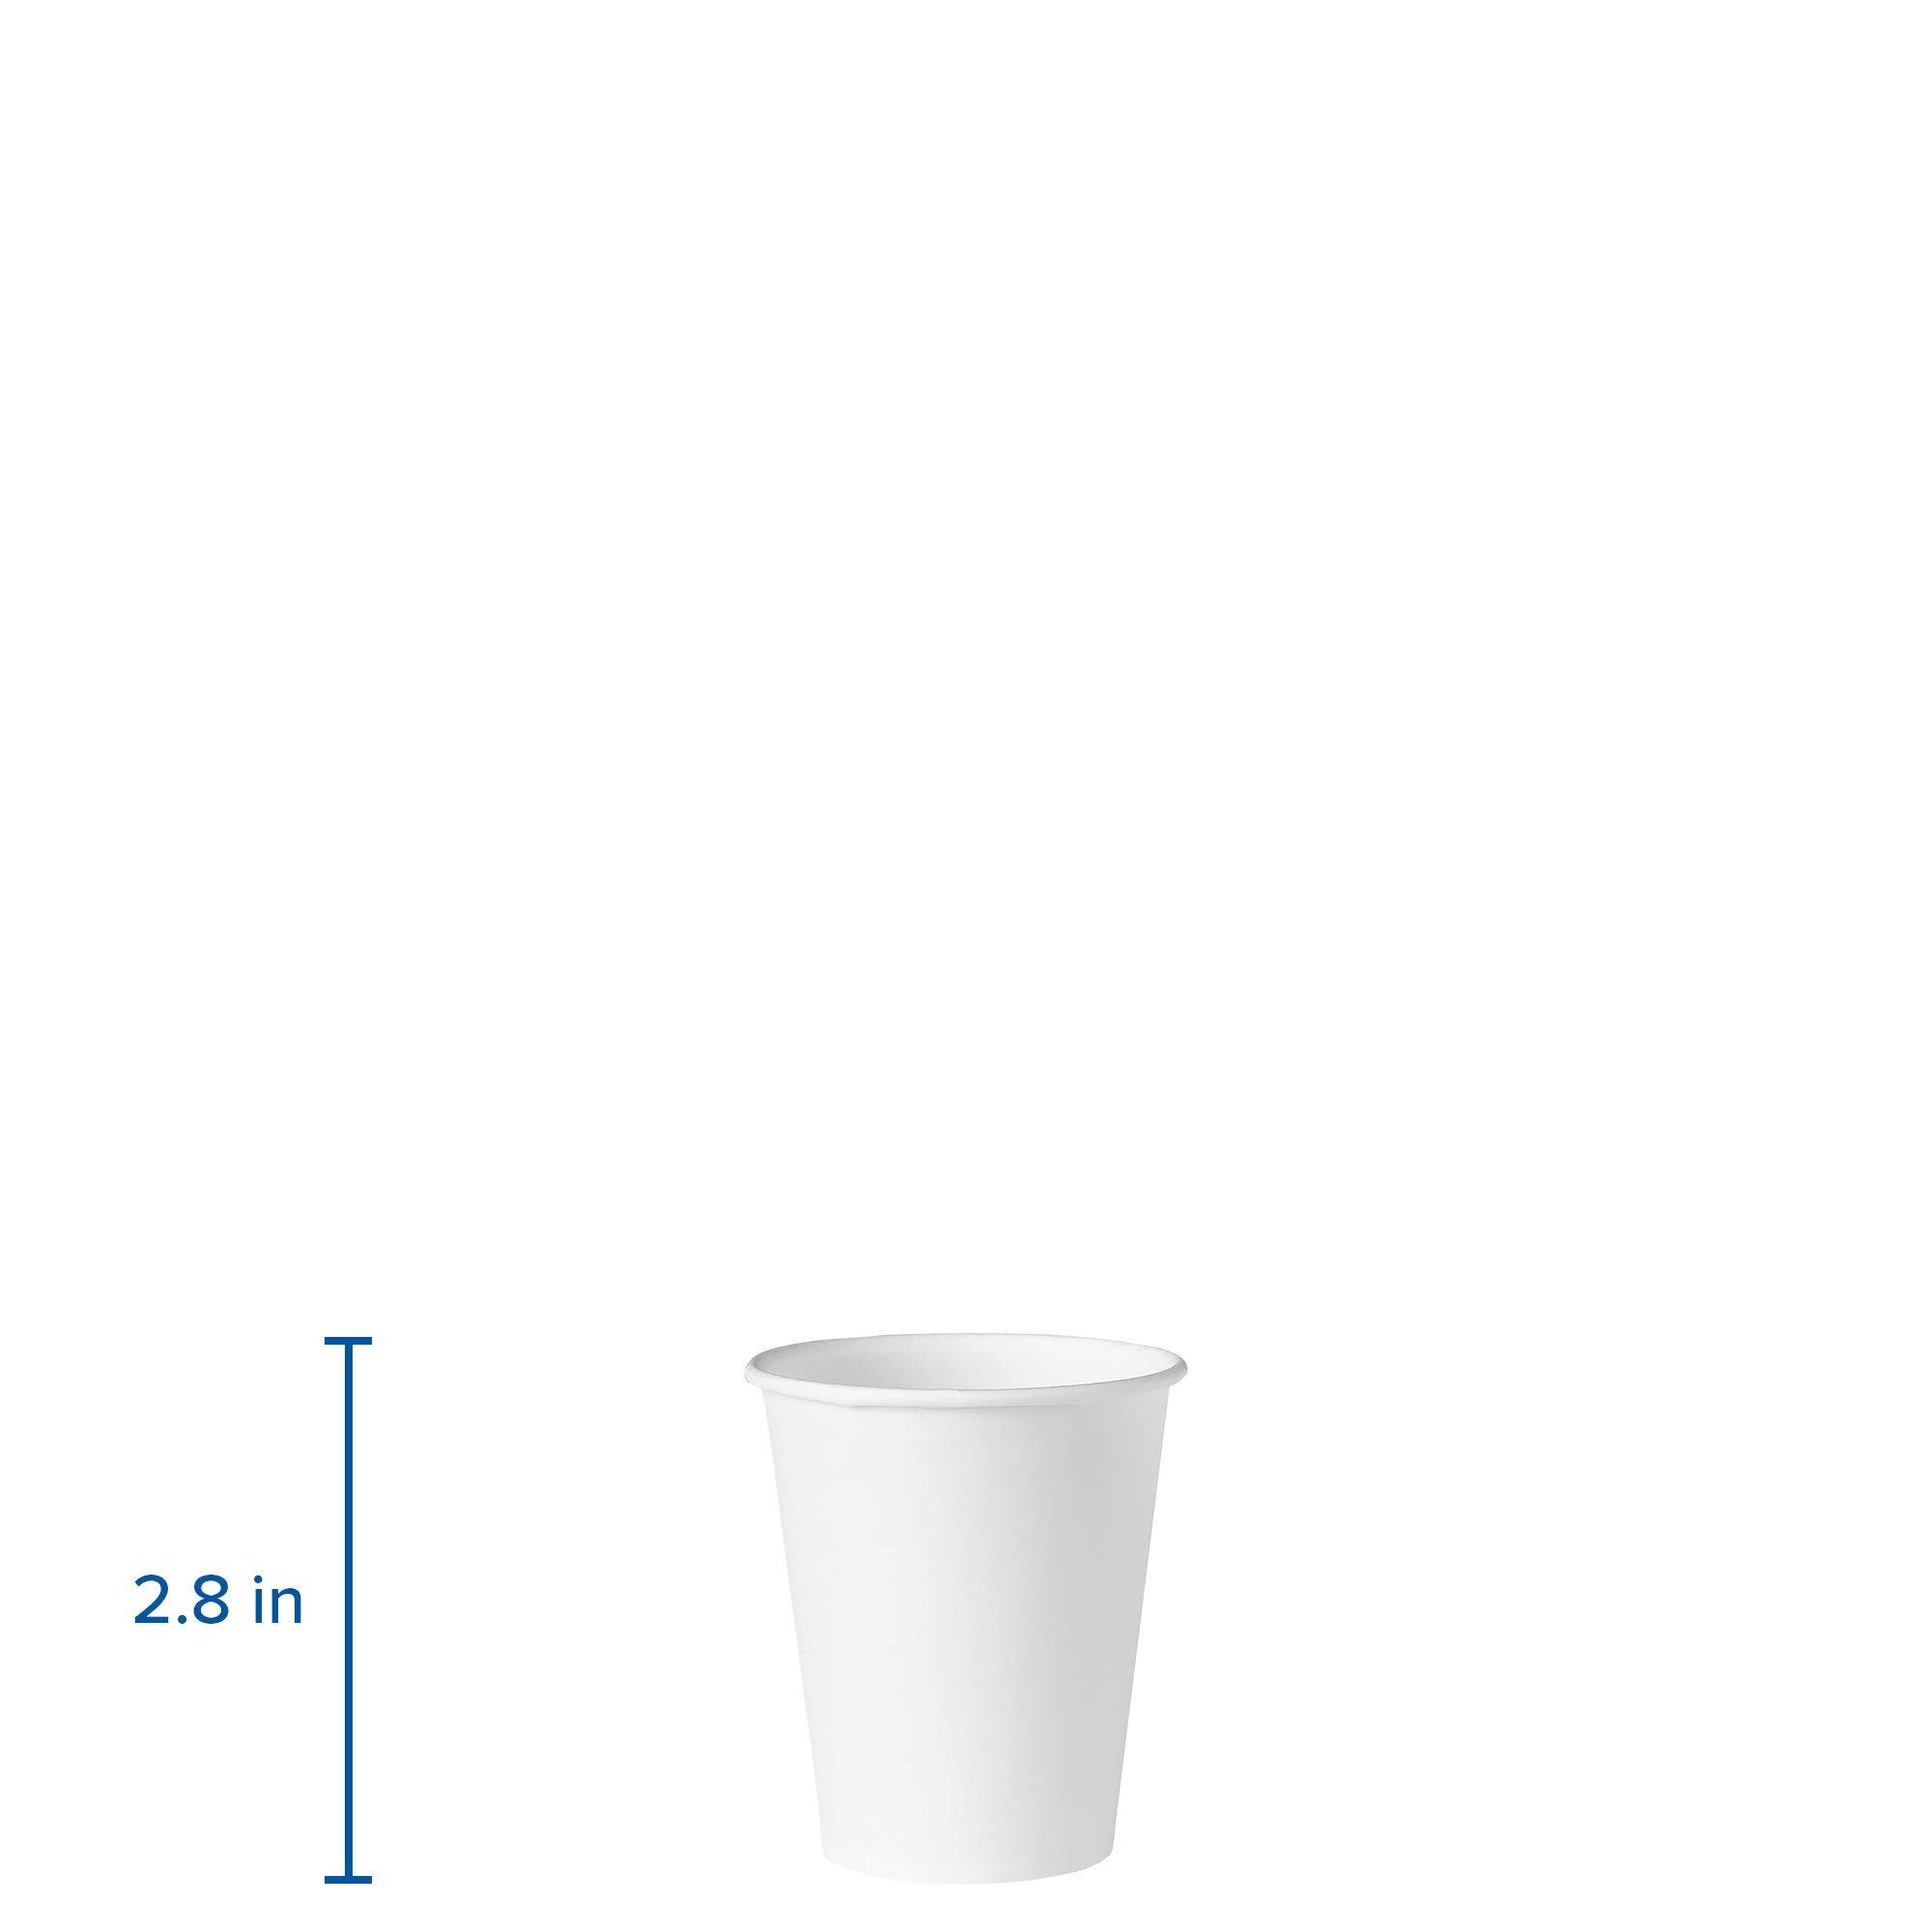 Solo 404-2050 4 oz White Treated Paper Cup (Case of 5000) by Solo Foodservice (Image #2)